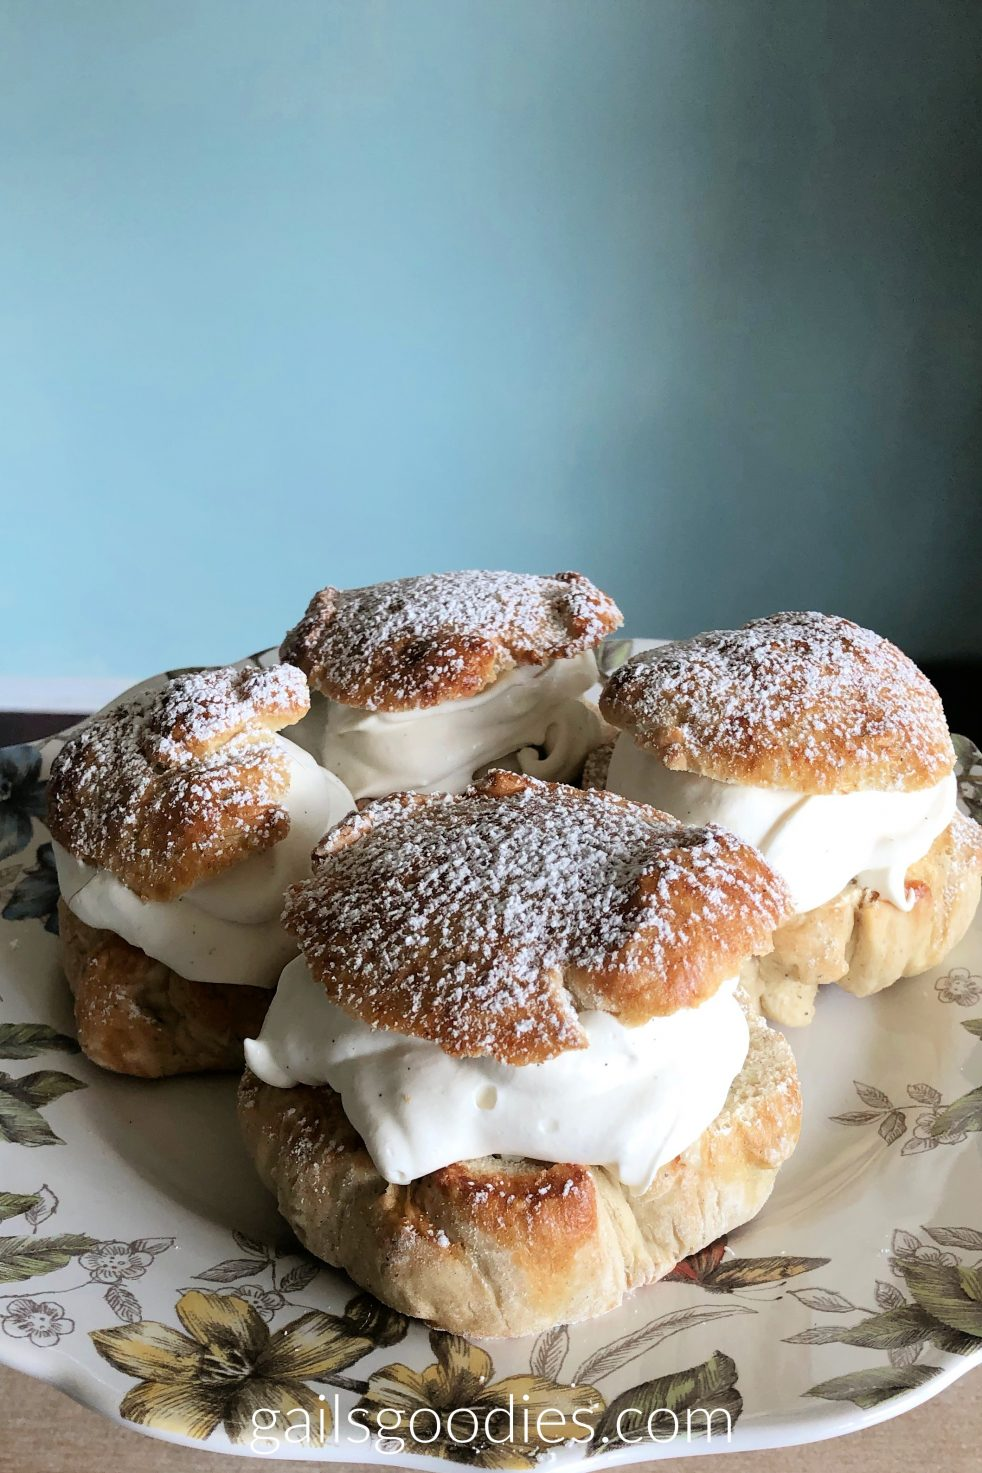 Four Almond Semlor are arranged on a plate with a floral border. The golden tops of the semlor sit on a generous helping of whipped cream. They are dusted with powdered sugar.